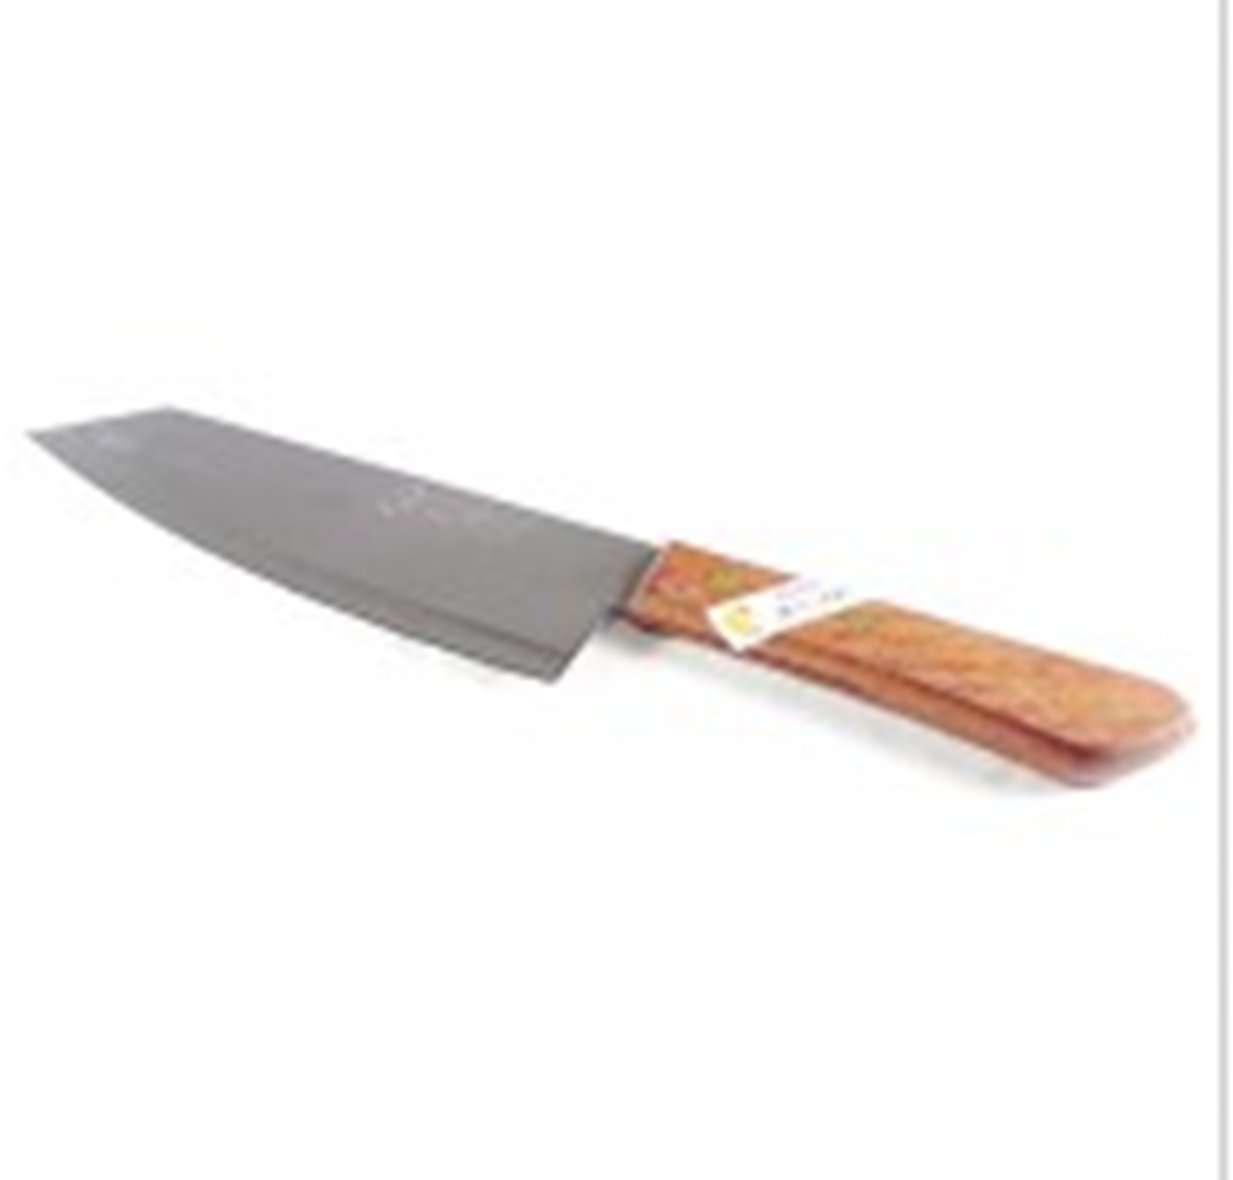 Stainless Steel 7'' No.173 Master Chefs/Cooks Kitchen Knife by areerataeyshop (Image #1)